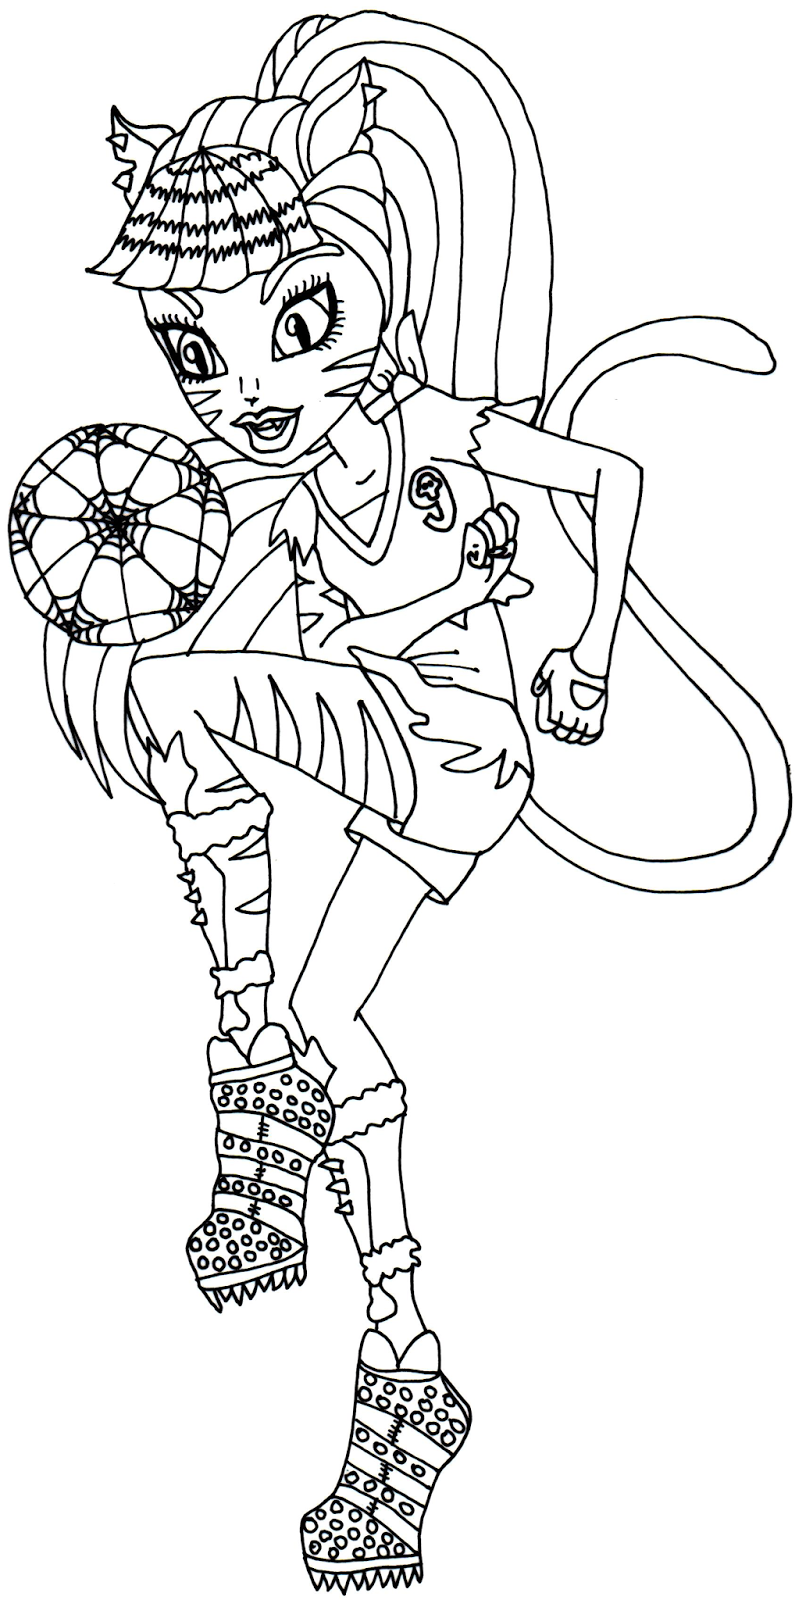 Free Printable Monster High Coloring Pages: Toralei Stripe